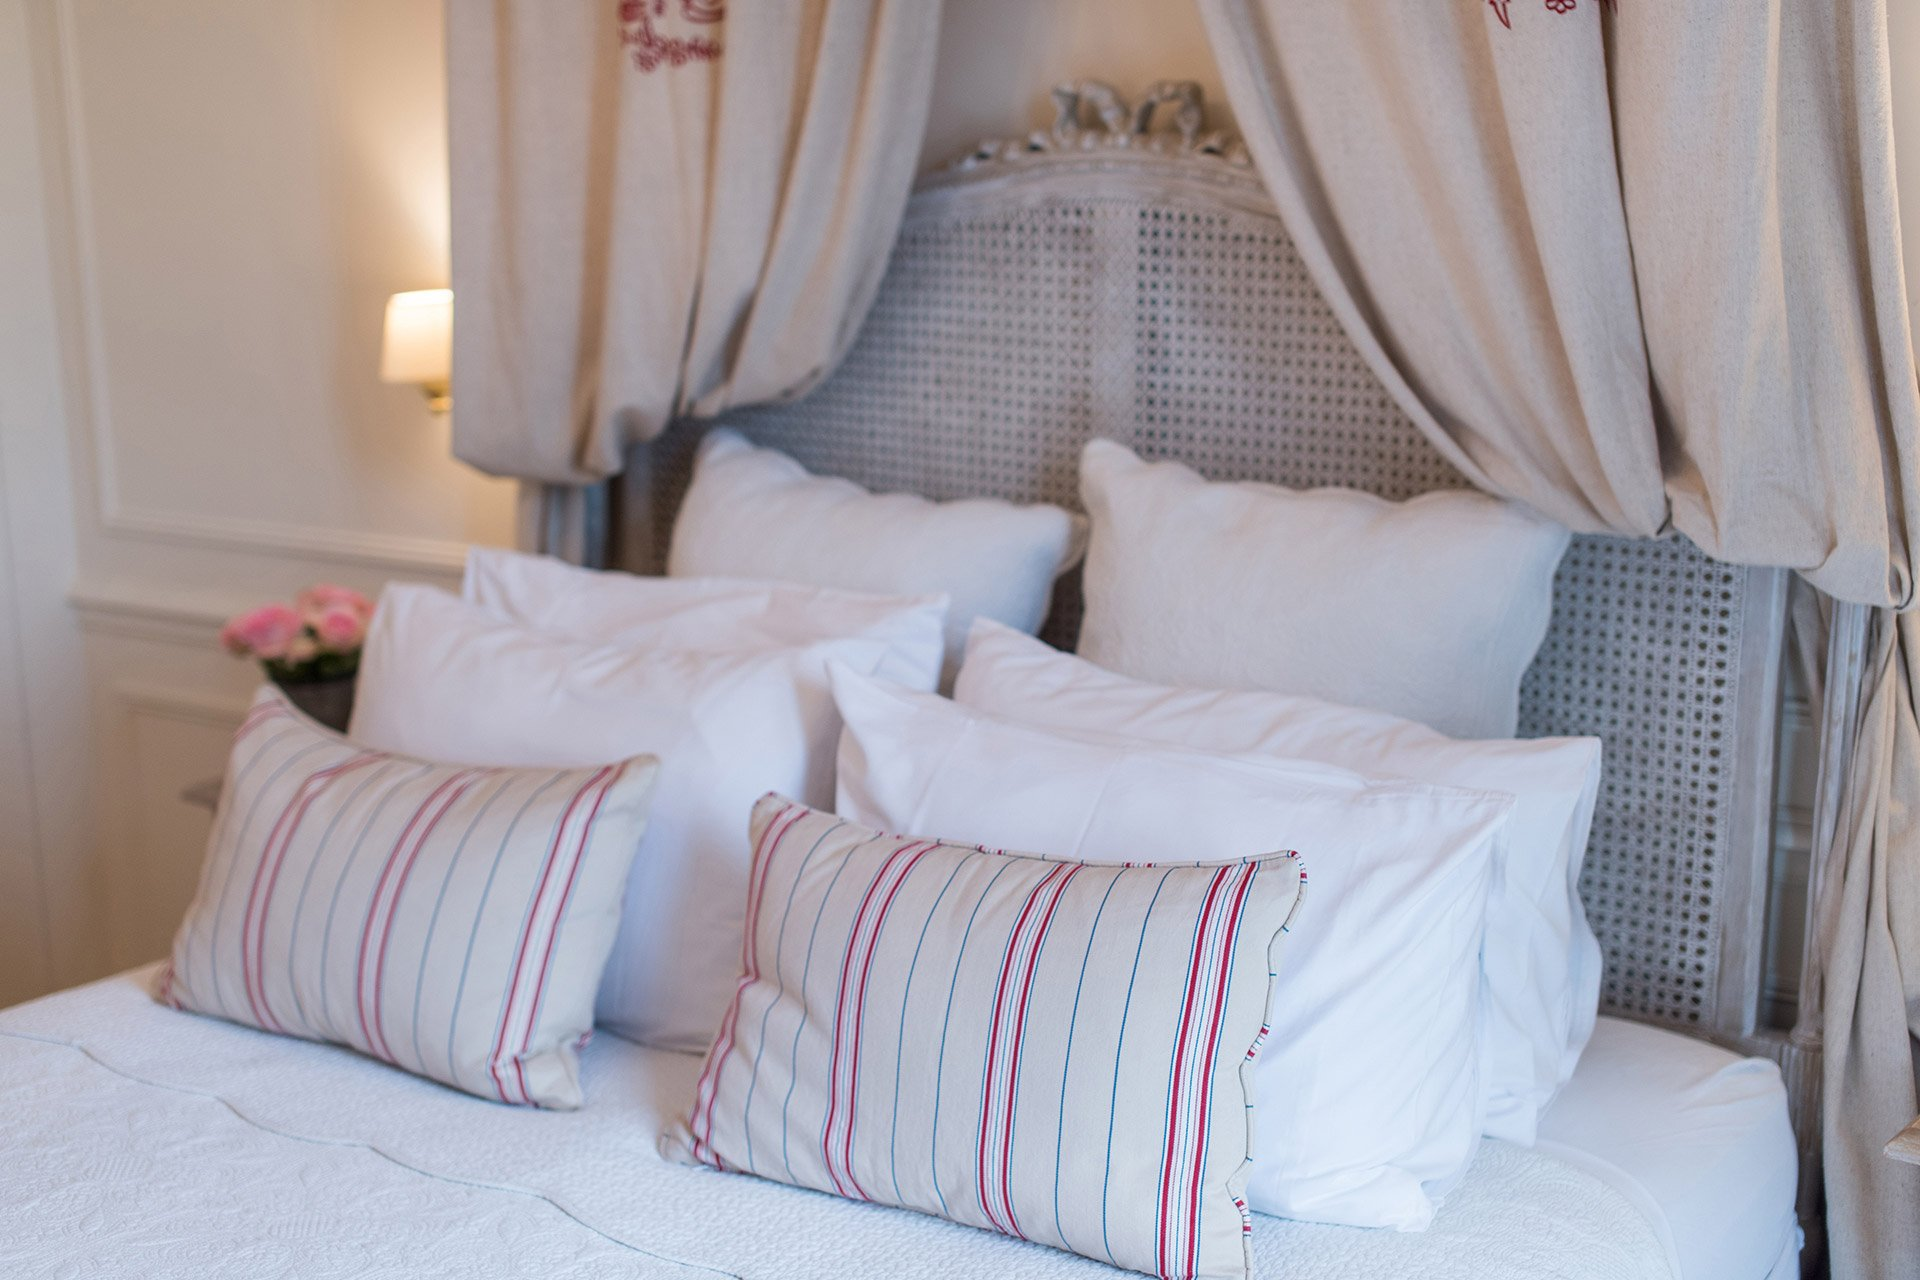 Luxurious bedding in the Merlot vacation rental offered by Paris Perfect